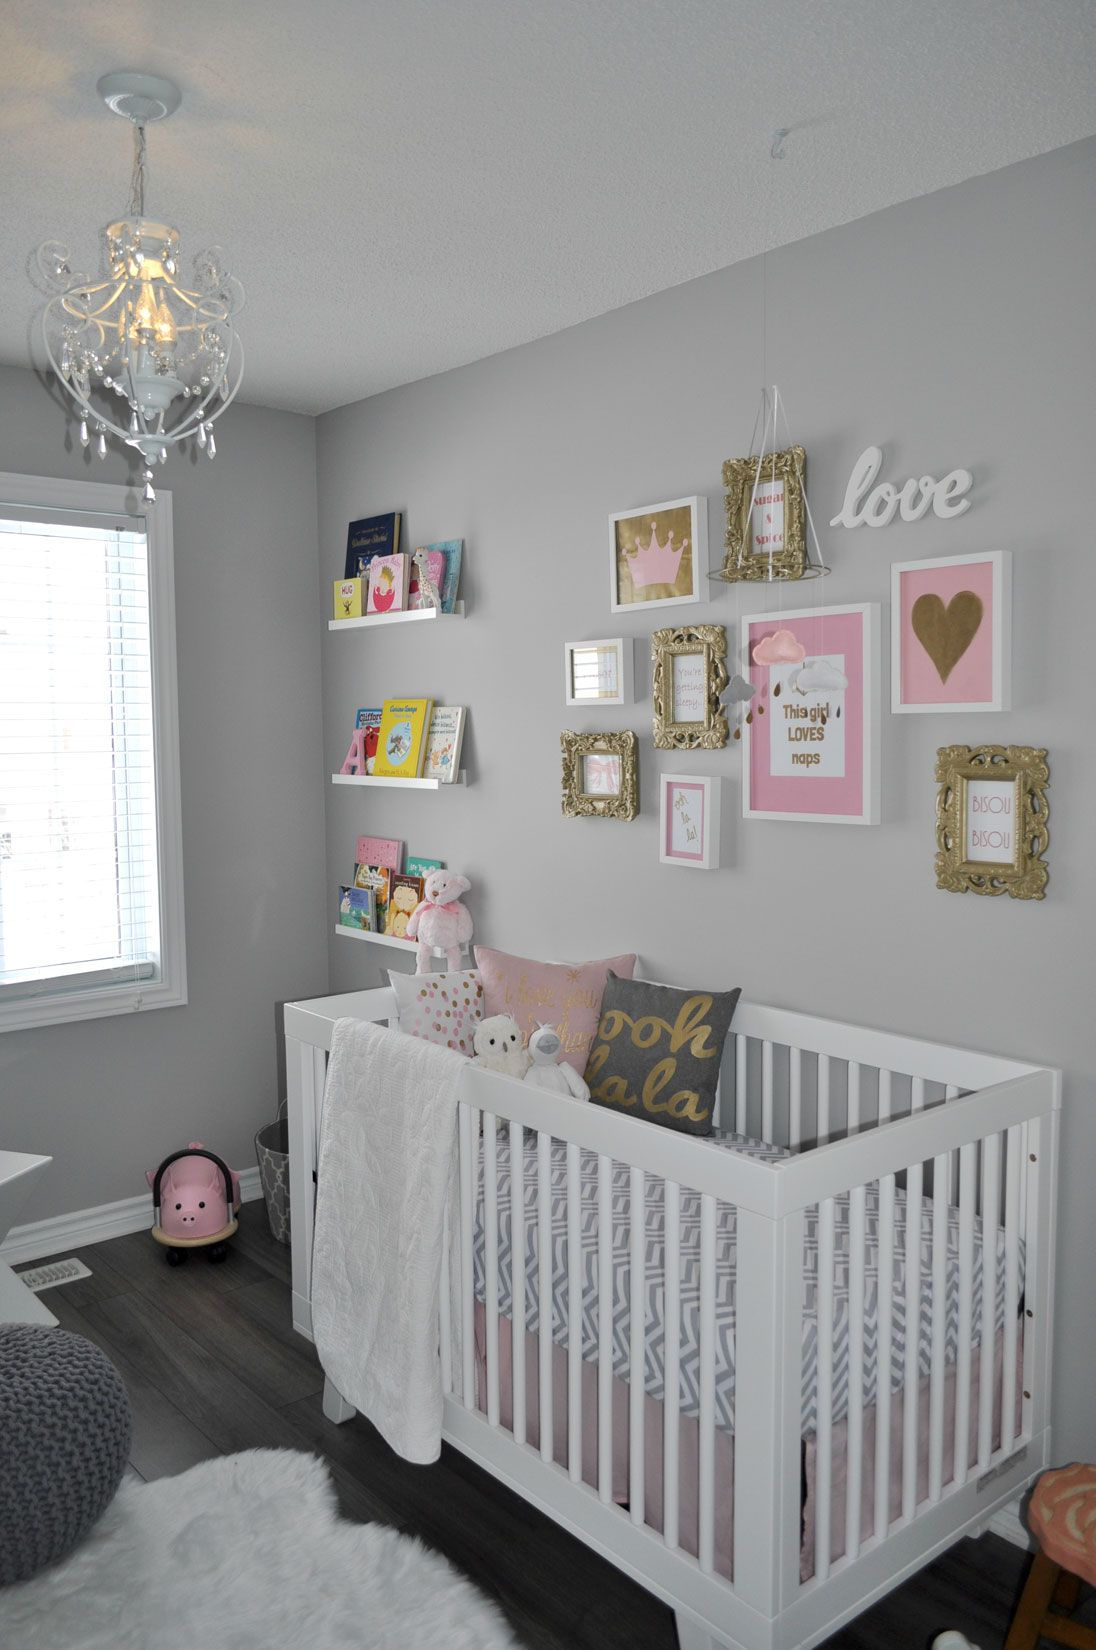 Decor Inspiration: A Pink, Gold, And Grey Nursery For A